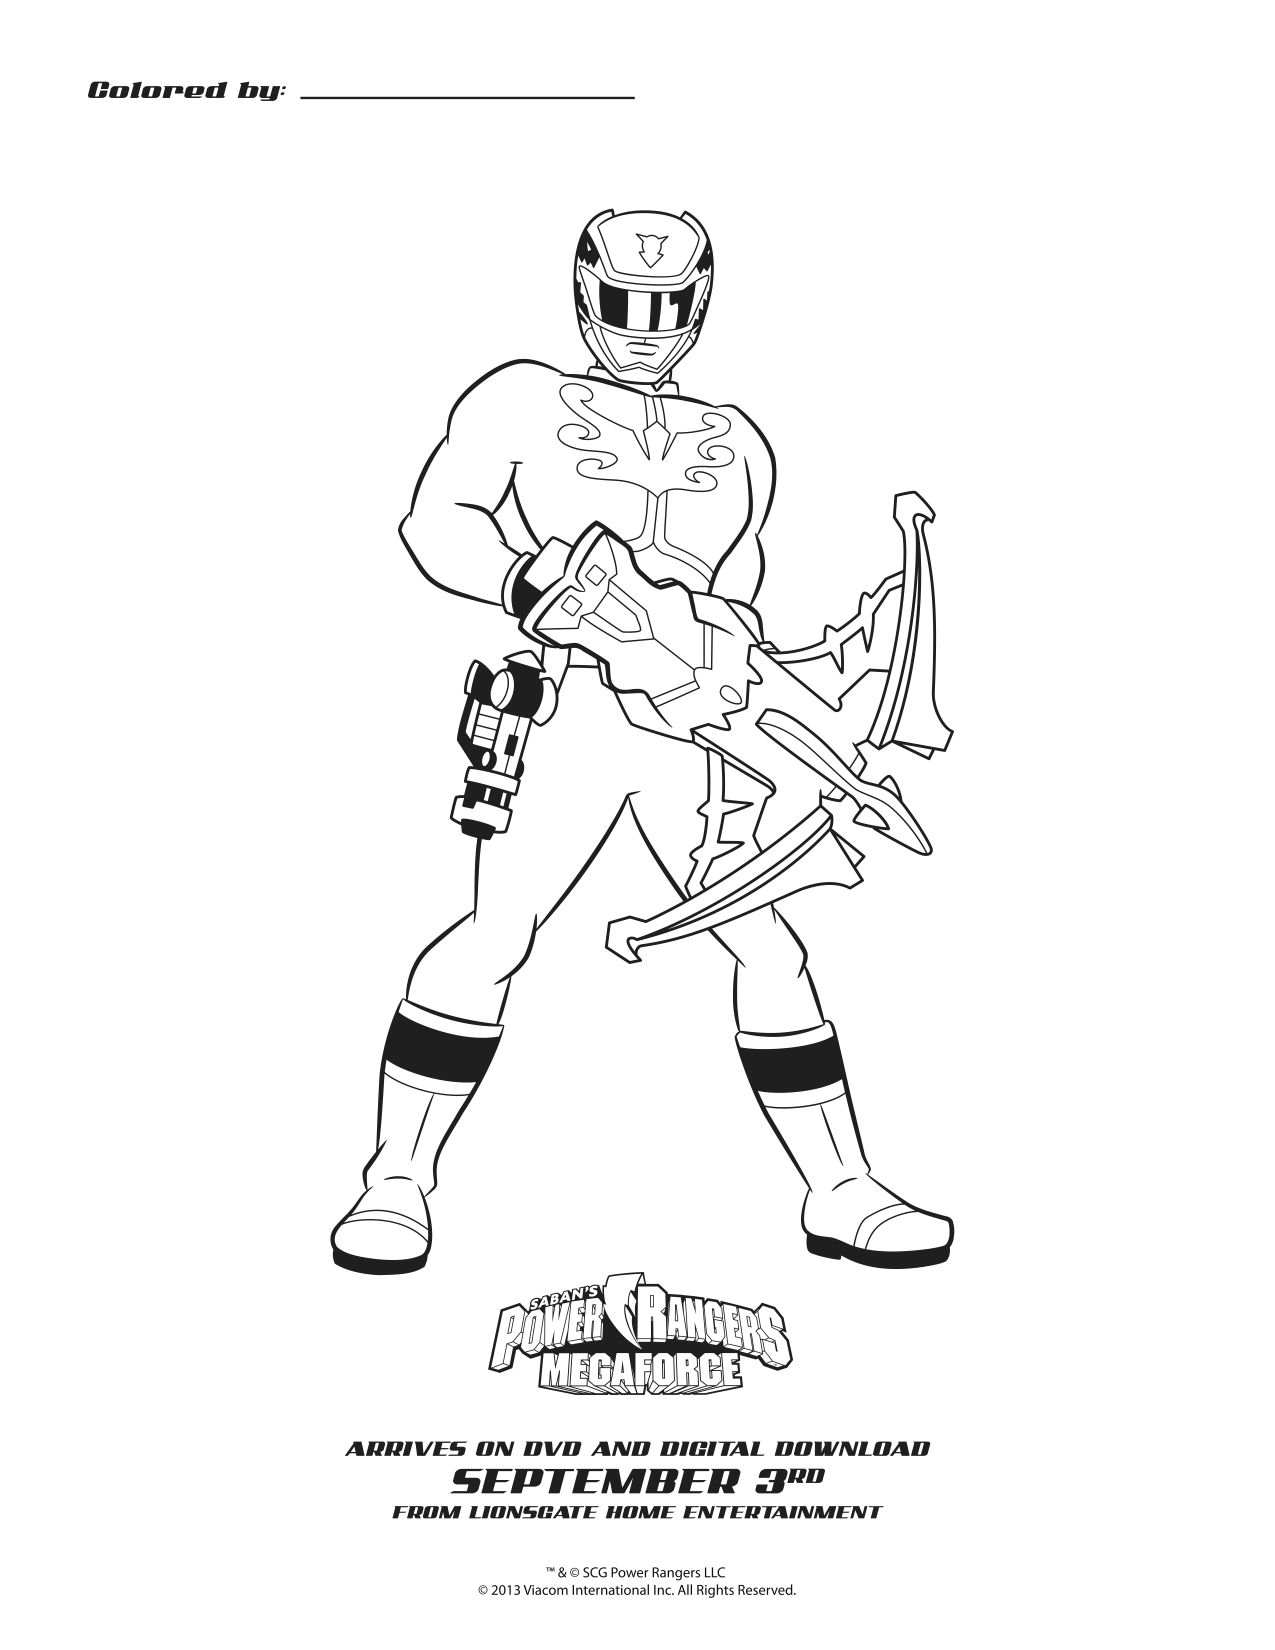 Power Rangers Megaforce Blue Ranger Coloring Sheet | Printable ...